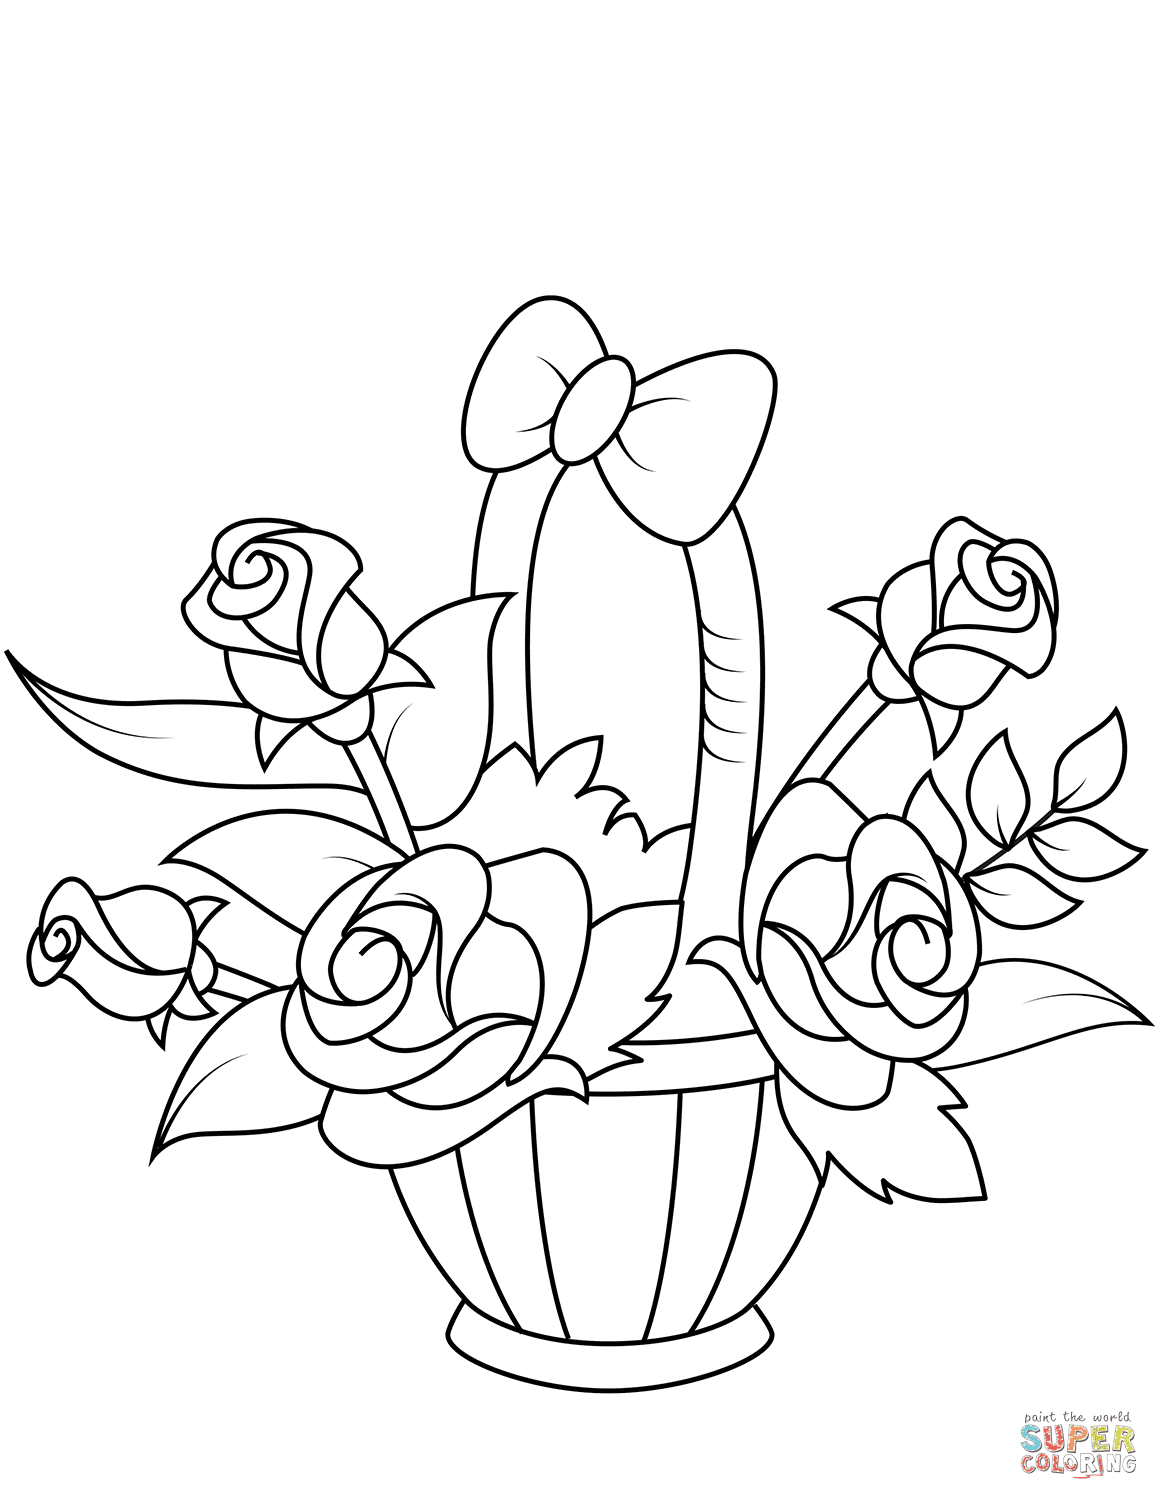 Basket With Roses Coloring Page Free Printable Coloring Pages